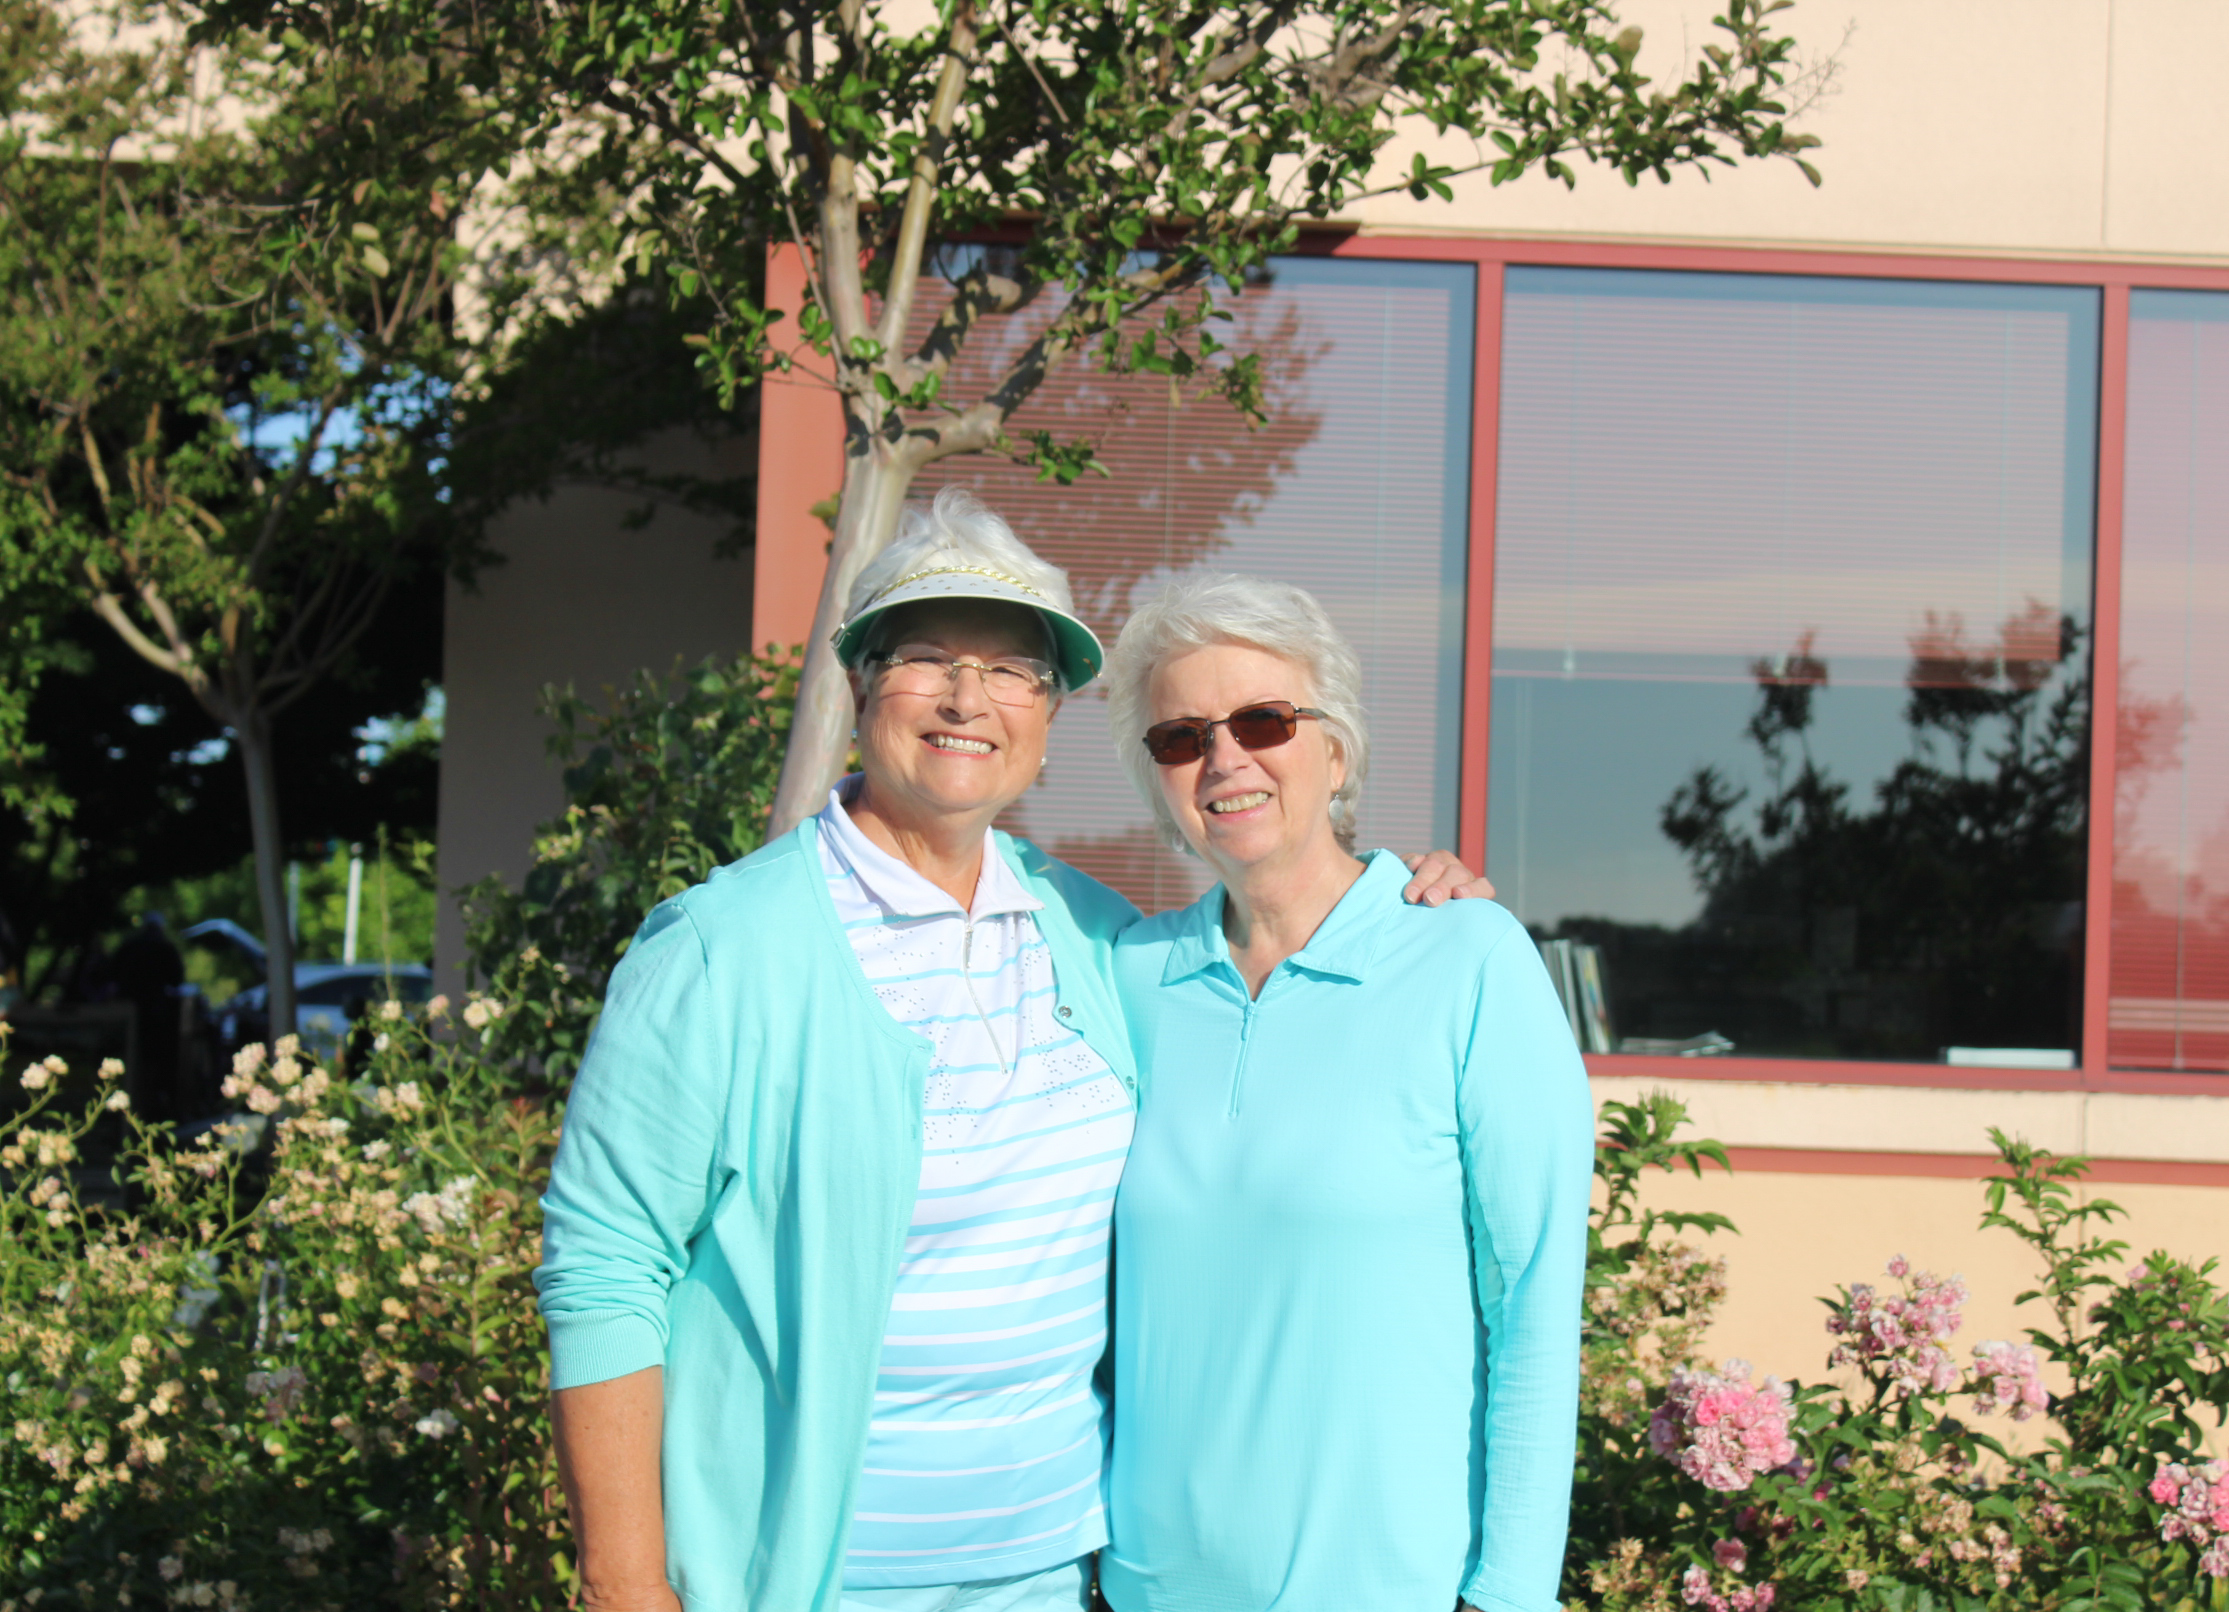 From left to right: Nancy Boggs, Past President, and Sheila McMuprhy, North Central Area Director.